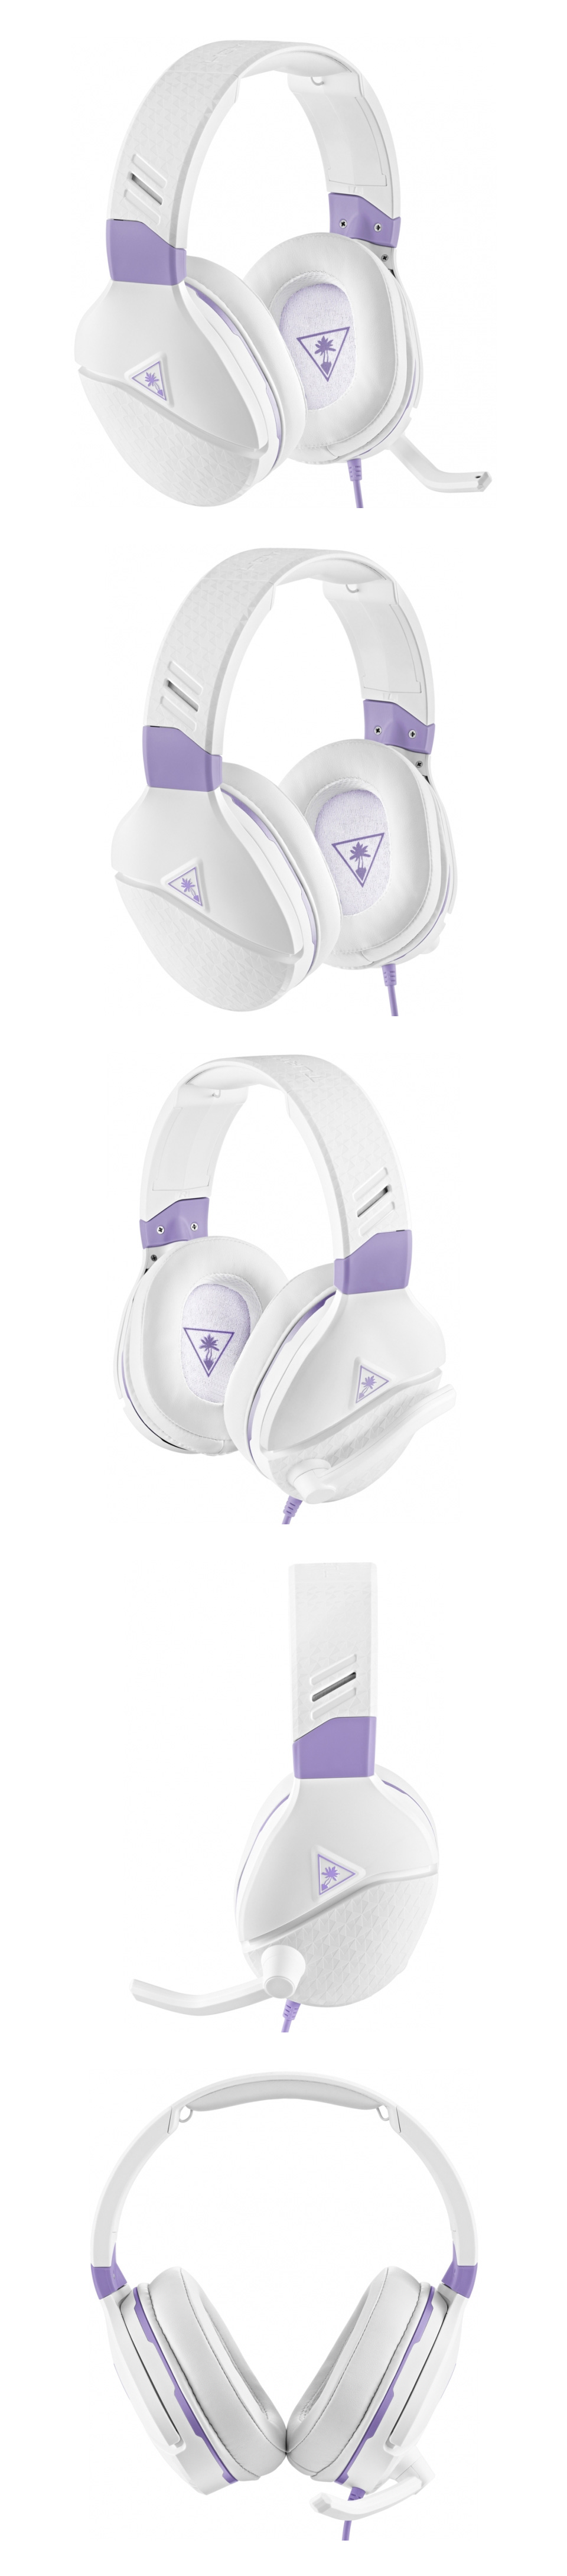 Turtle Beach Recon Spark Gaming Headset product